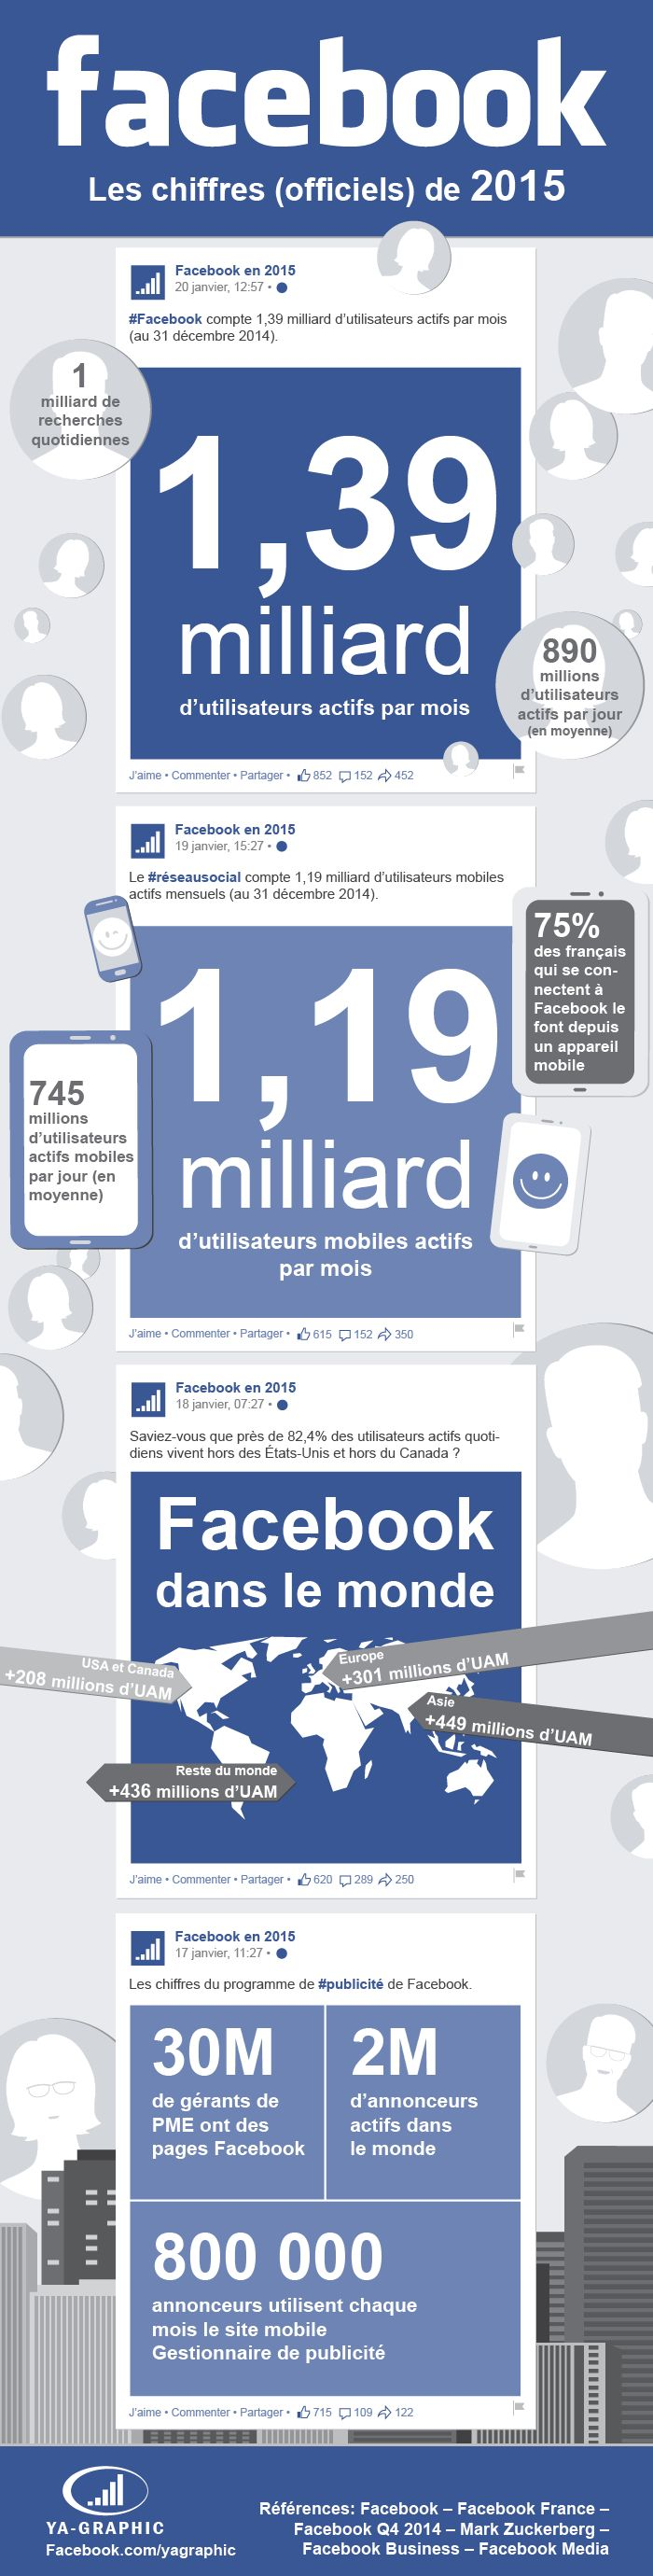 infographie-facebook-chiffres-2015